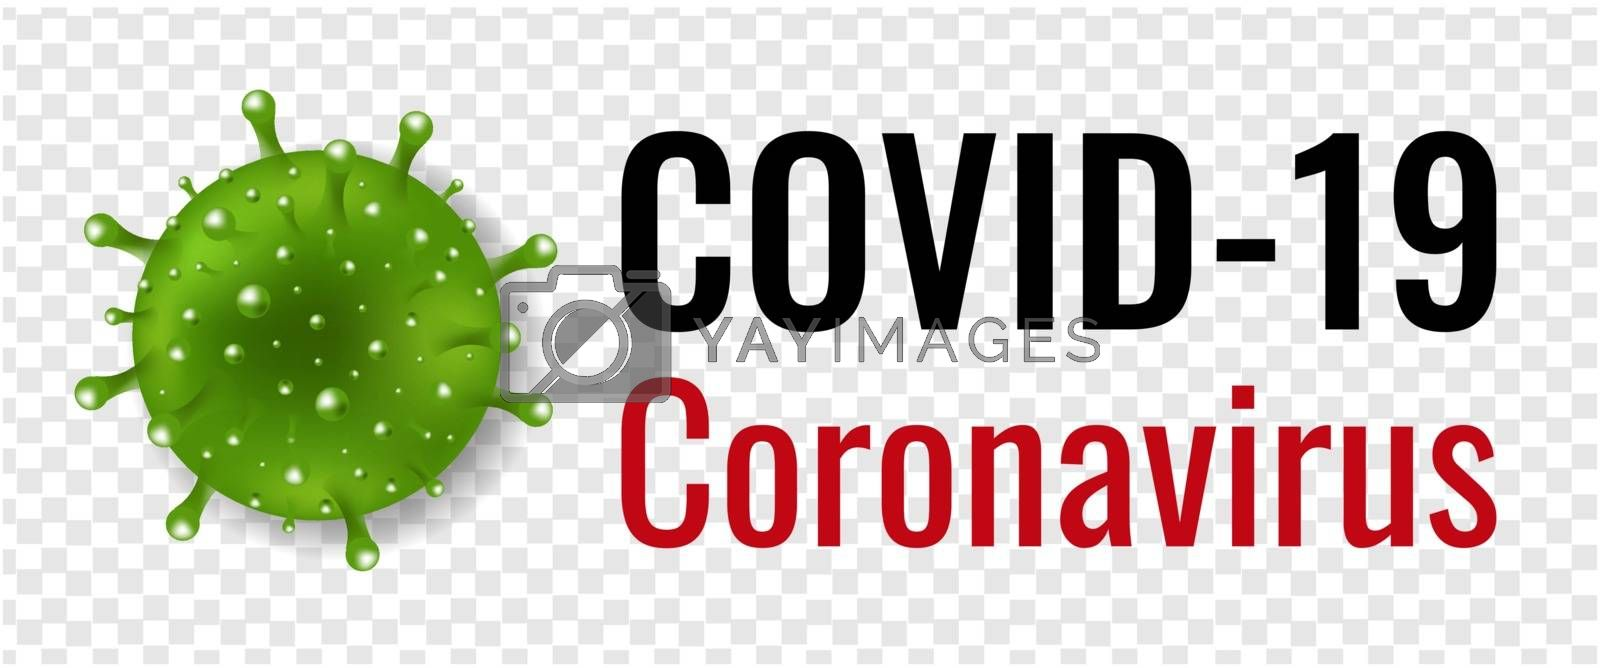 Coronavirus Poster With Transparent Background With Gradient Mesh, Vector Illustration